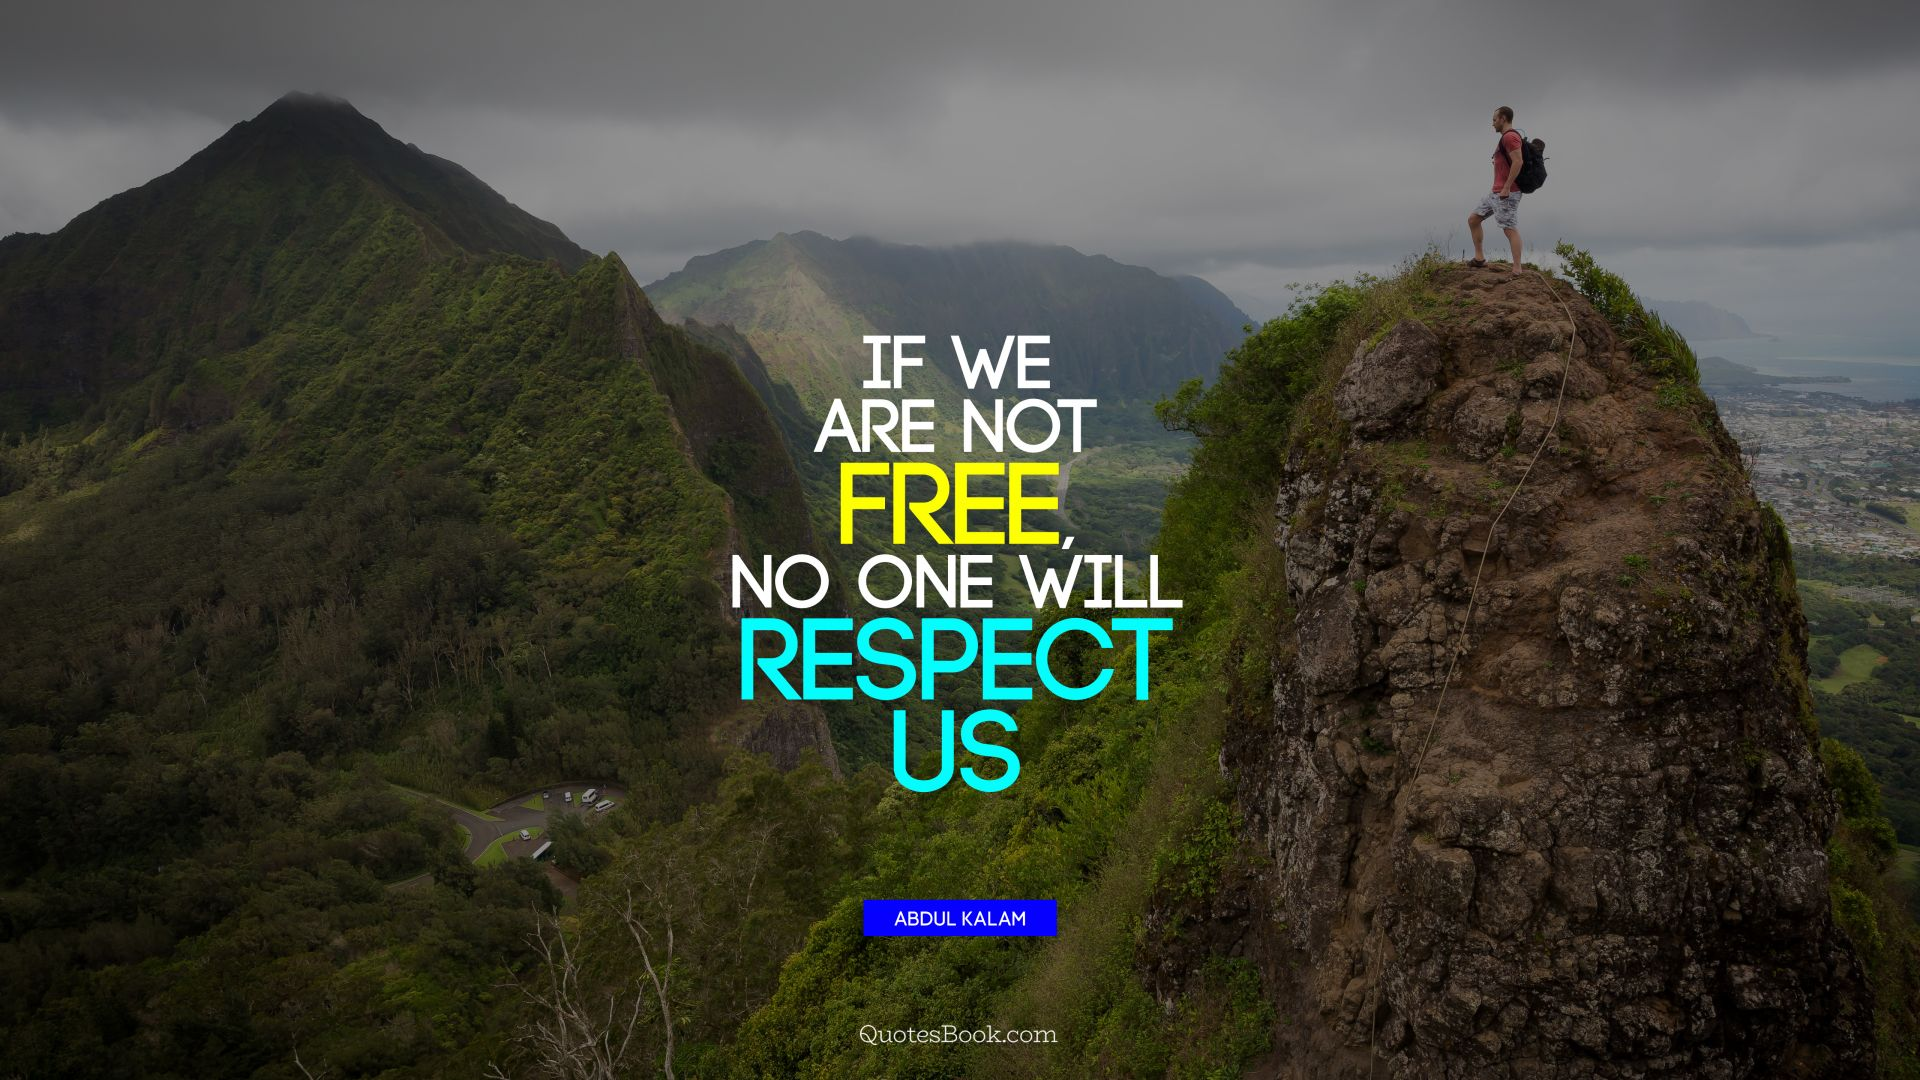 If we are not free, no one will respect us. - Quote by Abdul Kalam